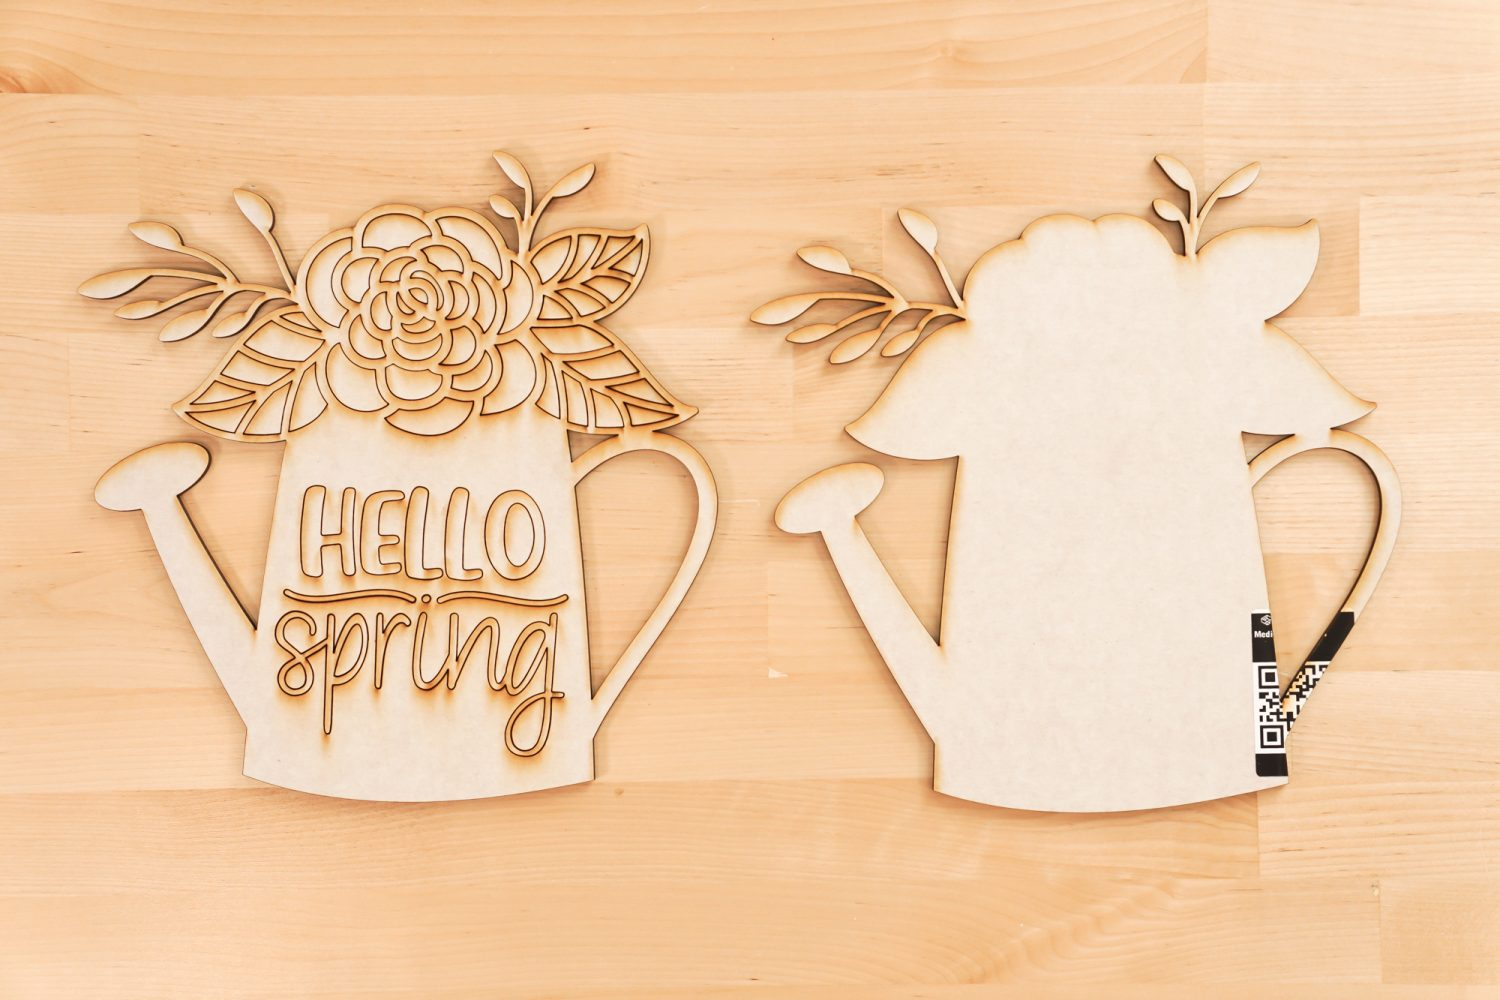 Pieces of the Hello Spring file cut on the Glowforge